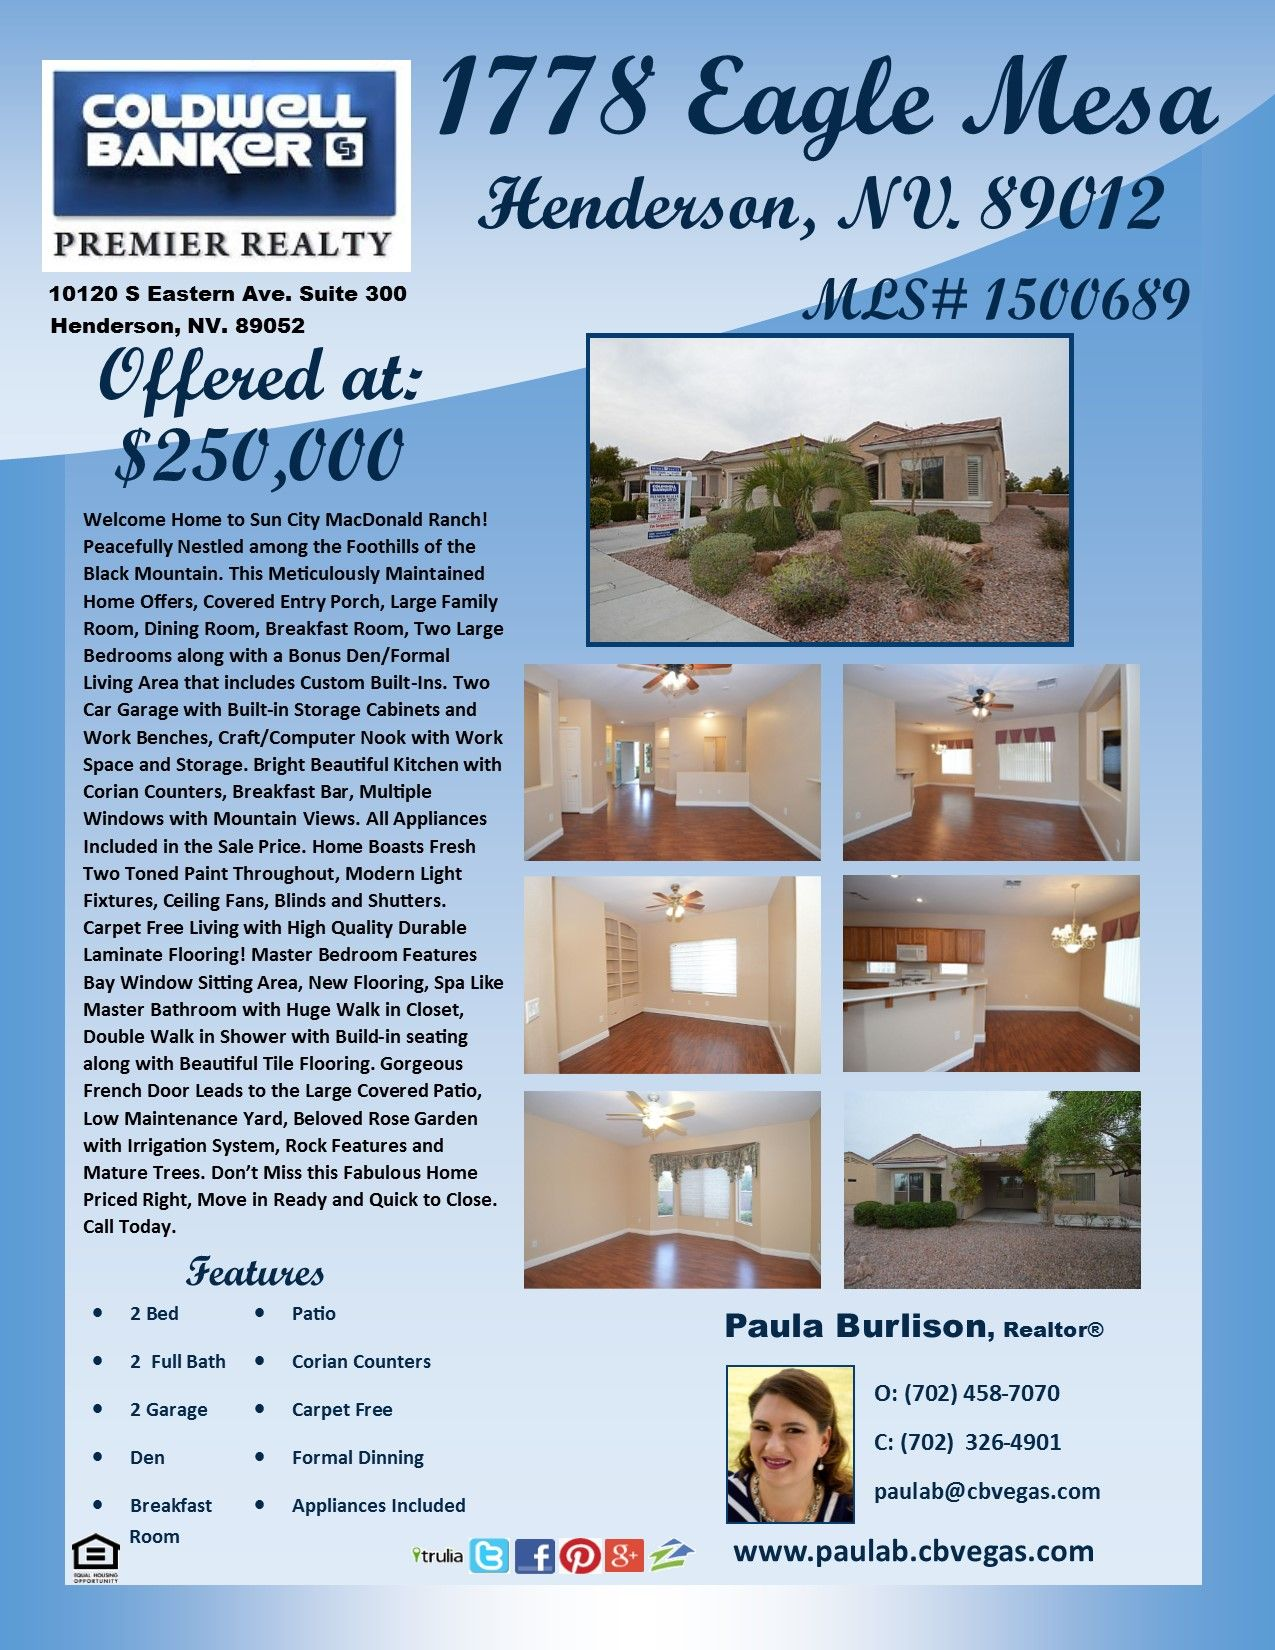 Stunning 55+ Home w/2 Large Bed + Den w/Built-Ins. Family & Dining Room, B-Fast Room, 2 Car Garage w/Storage Closets. Craft Nook, Kitchen w/Corian, Breakfast Bar, Appliances Included. Fresh Paint, Custom Blinds & Shutters. Carpet Free w/Durable Laminate. Master has Sitting Area, Bath w/Walk in Closet, Double Shower & Great Tile. Yard is Low Maintenance w/Rose Garden, Trees. Move in Ready, Priced Right, Quick to Close!!